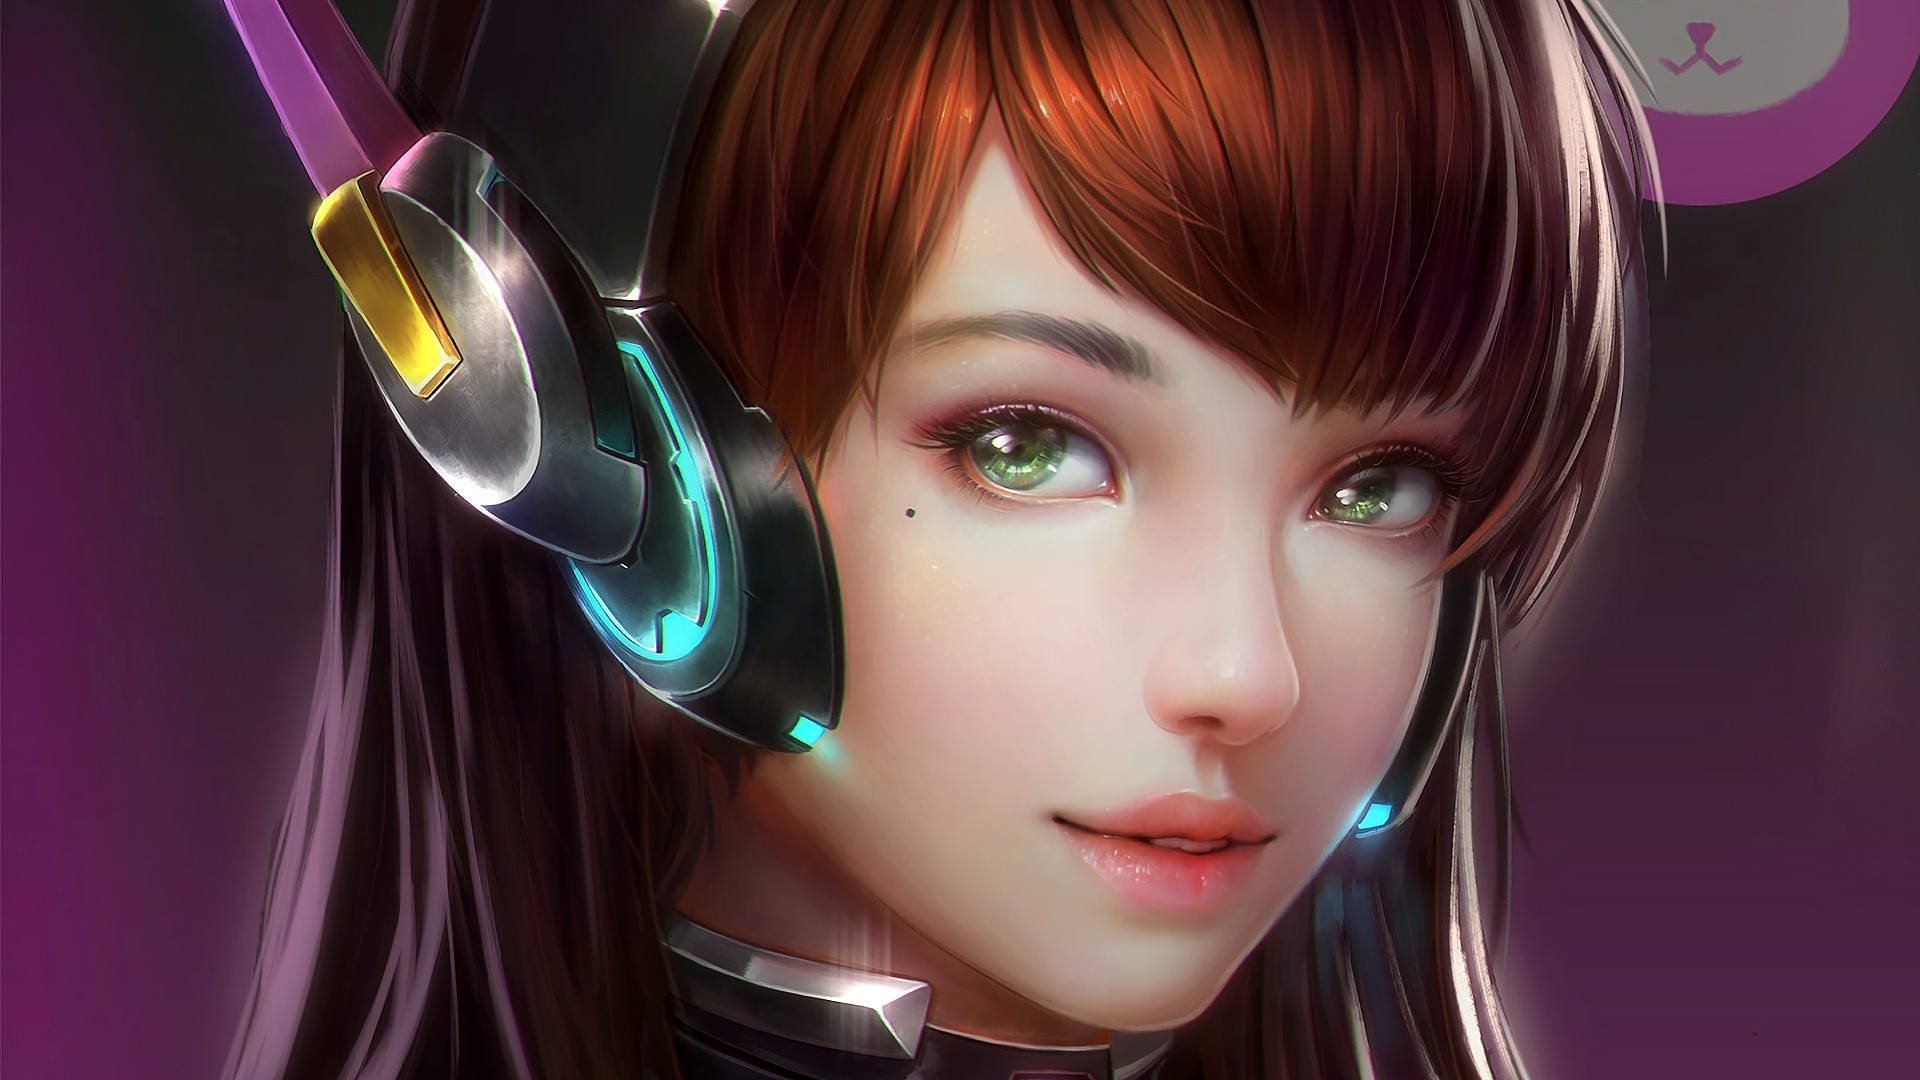 Cute Girly Wallpapers For Android Dva Overwatch Wallpapers Hd Wallpapers Id 23746